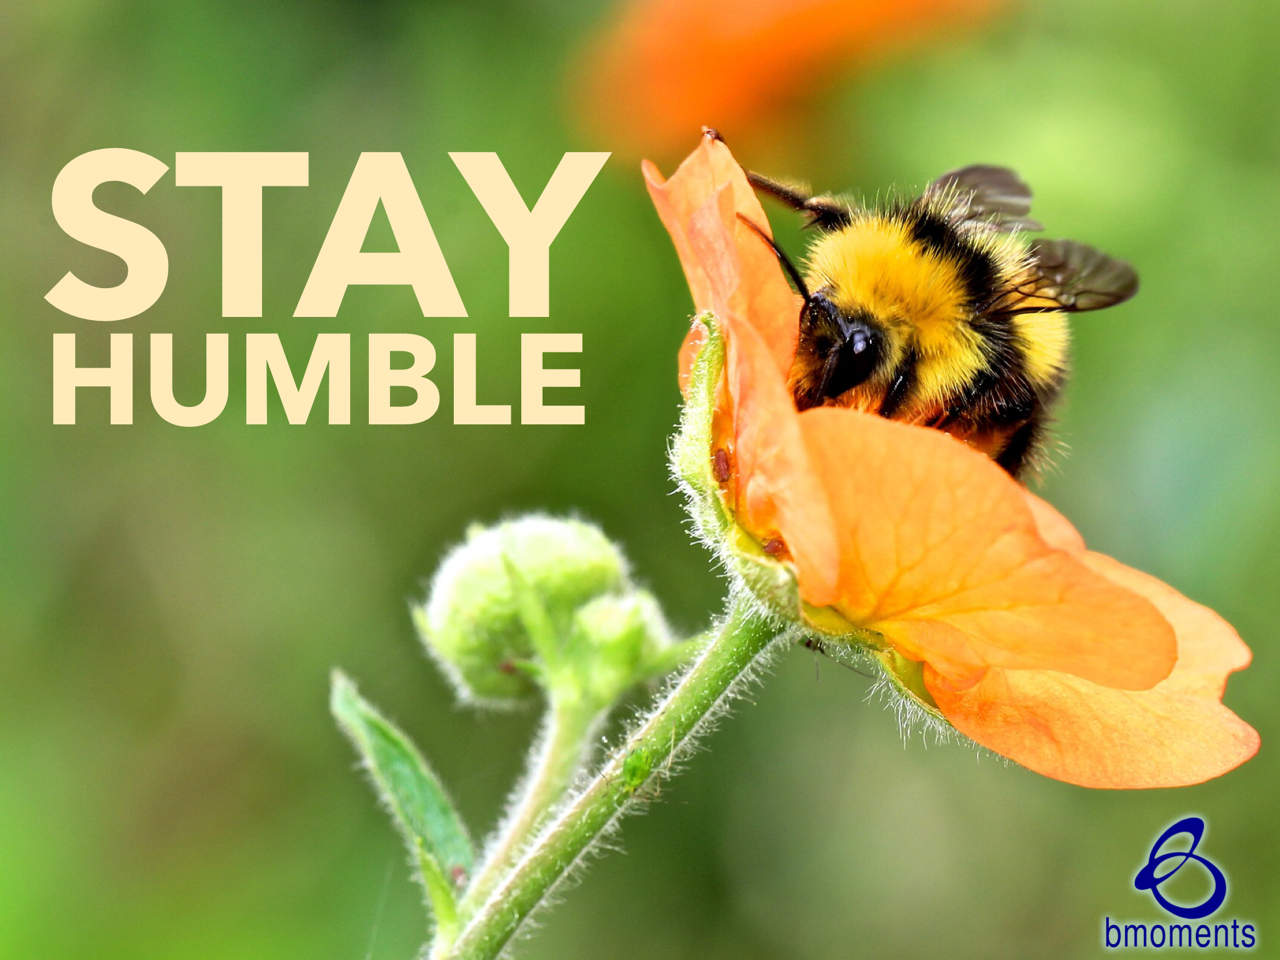 Your Humility Will Be Rewarded